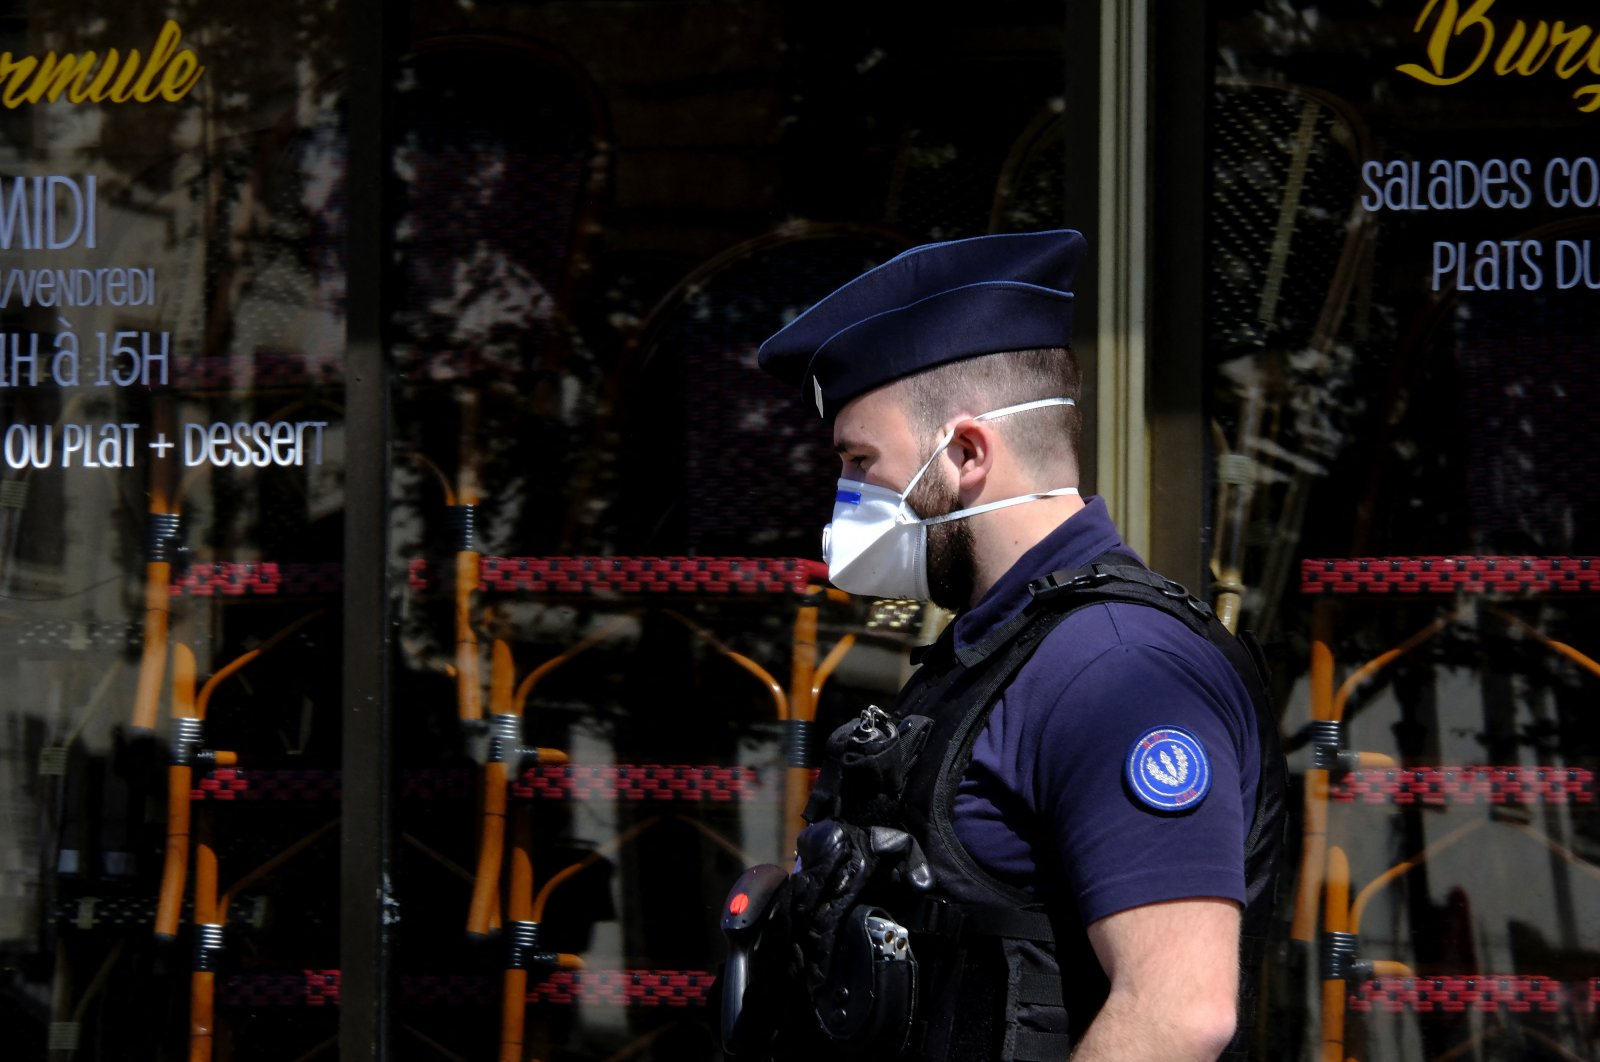 A French police officer wearing a protective face mask against the coronavirus walks in Paris, France, April 22, 2020. (Photo by Alfred Yaghobzadeh/acabapress.com via Reuters)